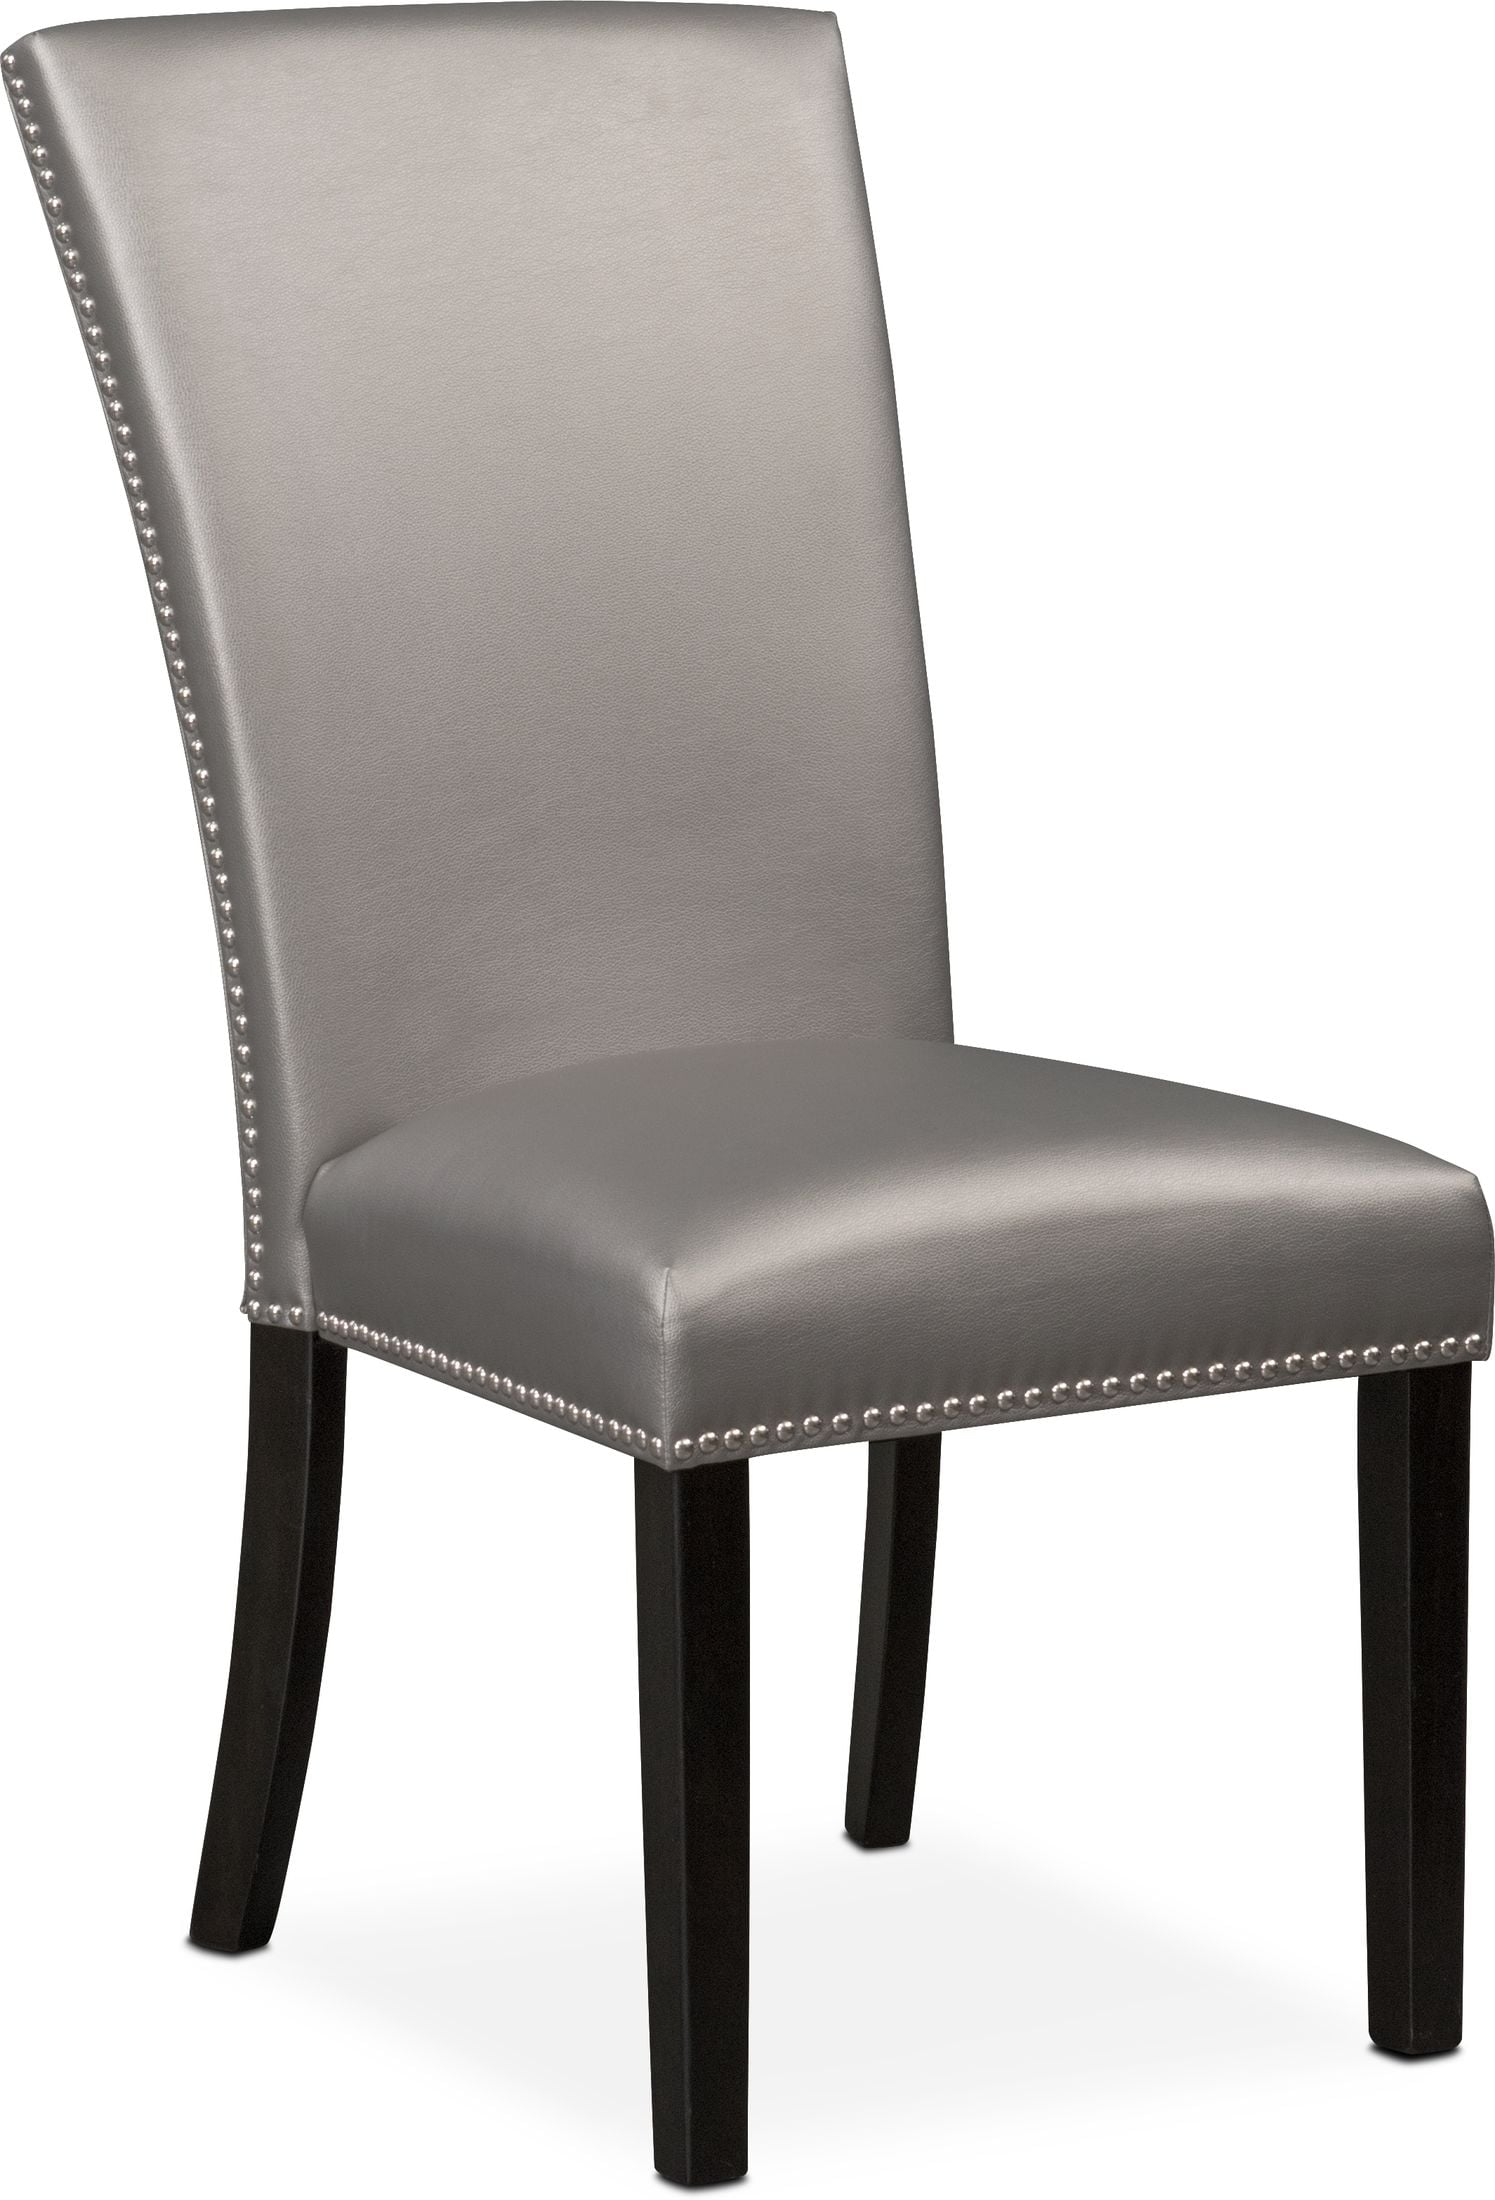 Dining Room Furniture - Artemis Upholstered Dining Chair